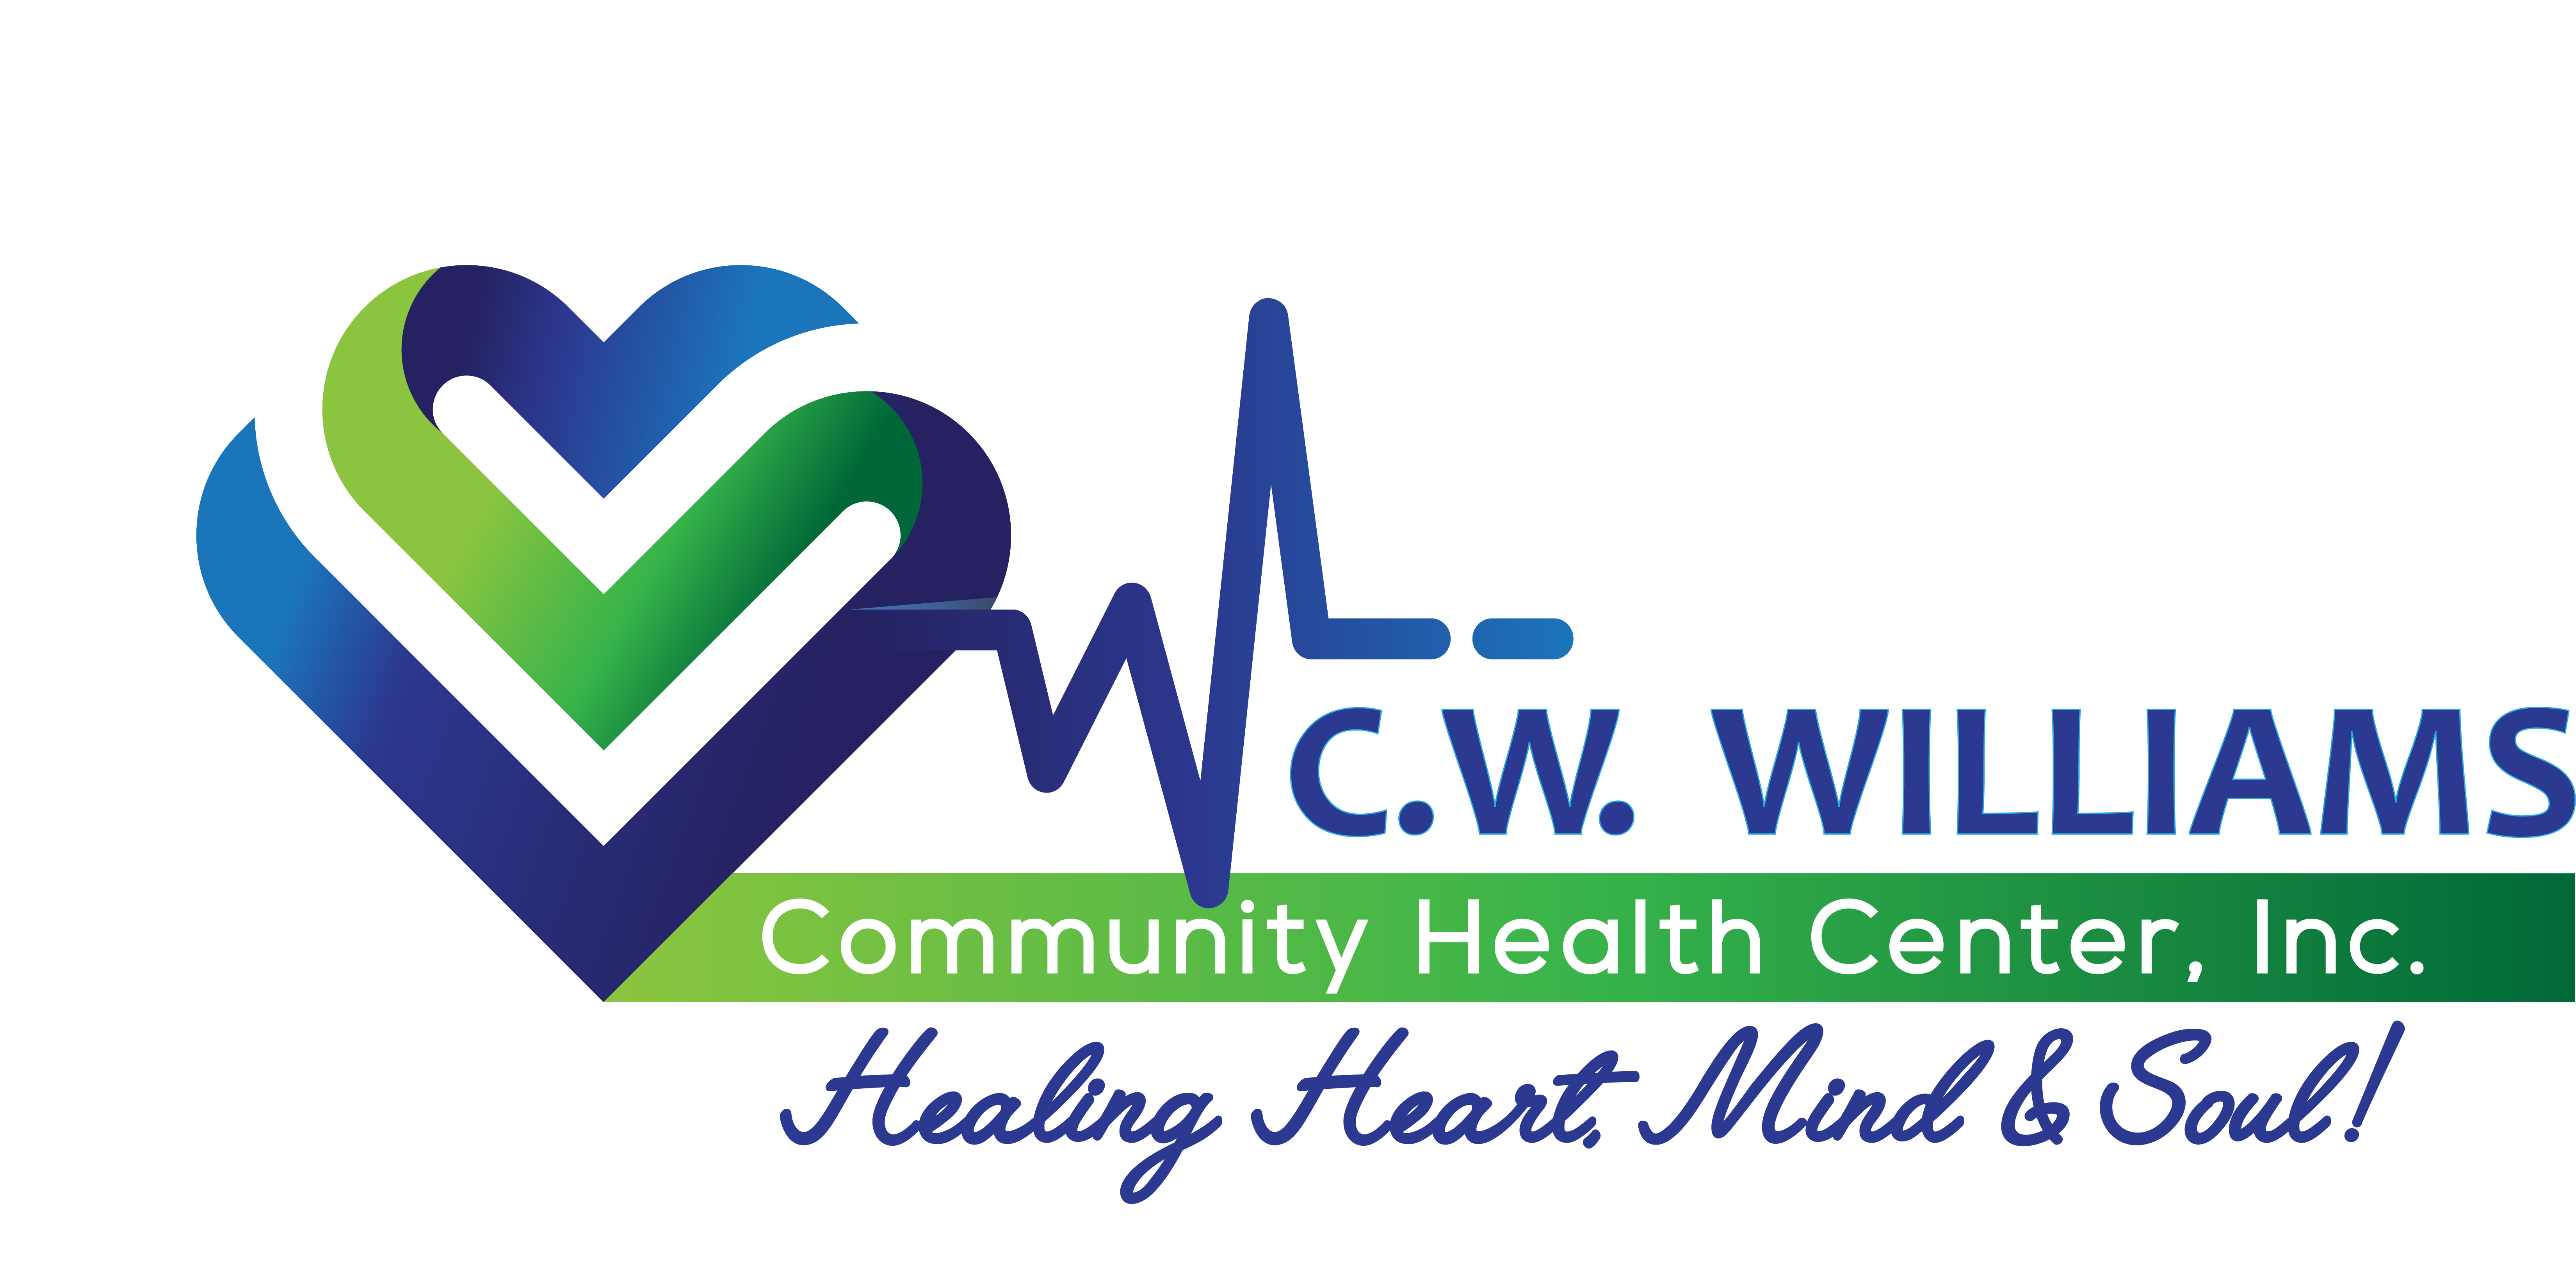 cwwilliams-logo